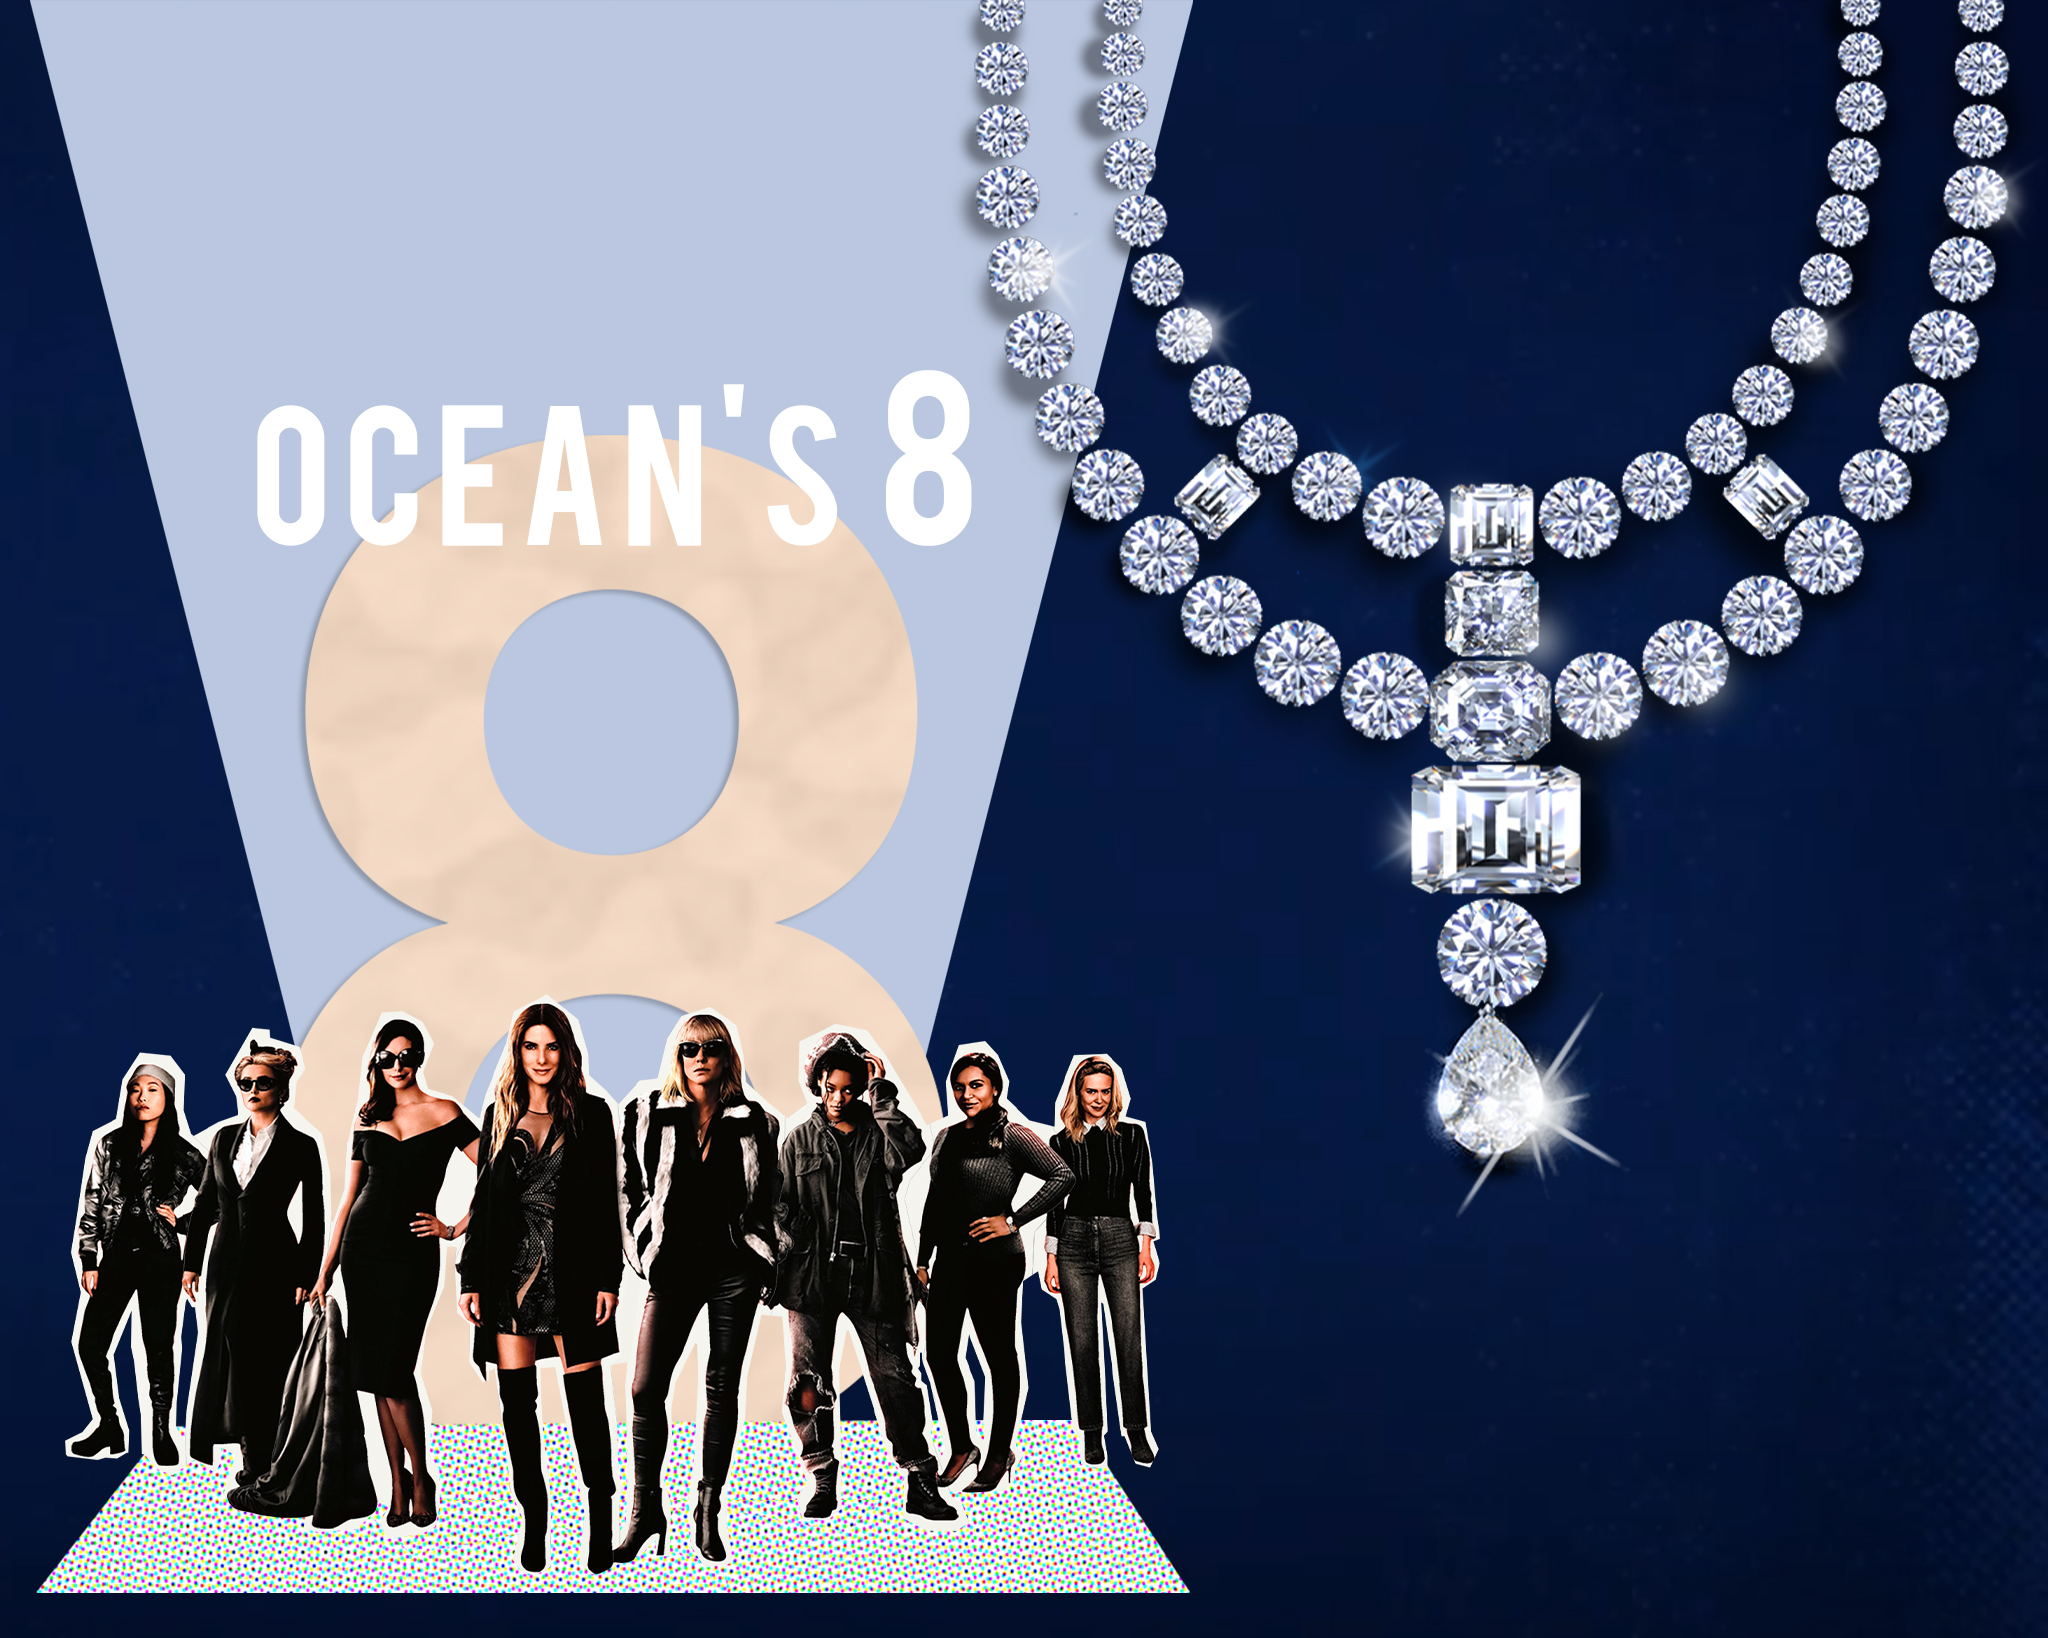 The girl gang in Oceans 8 swindle away the legendary Toussaint necklace from the MET Gala